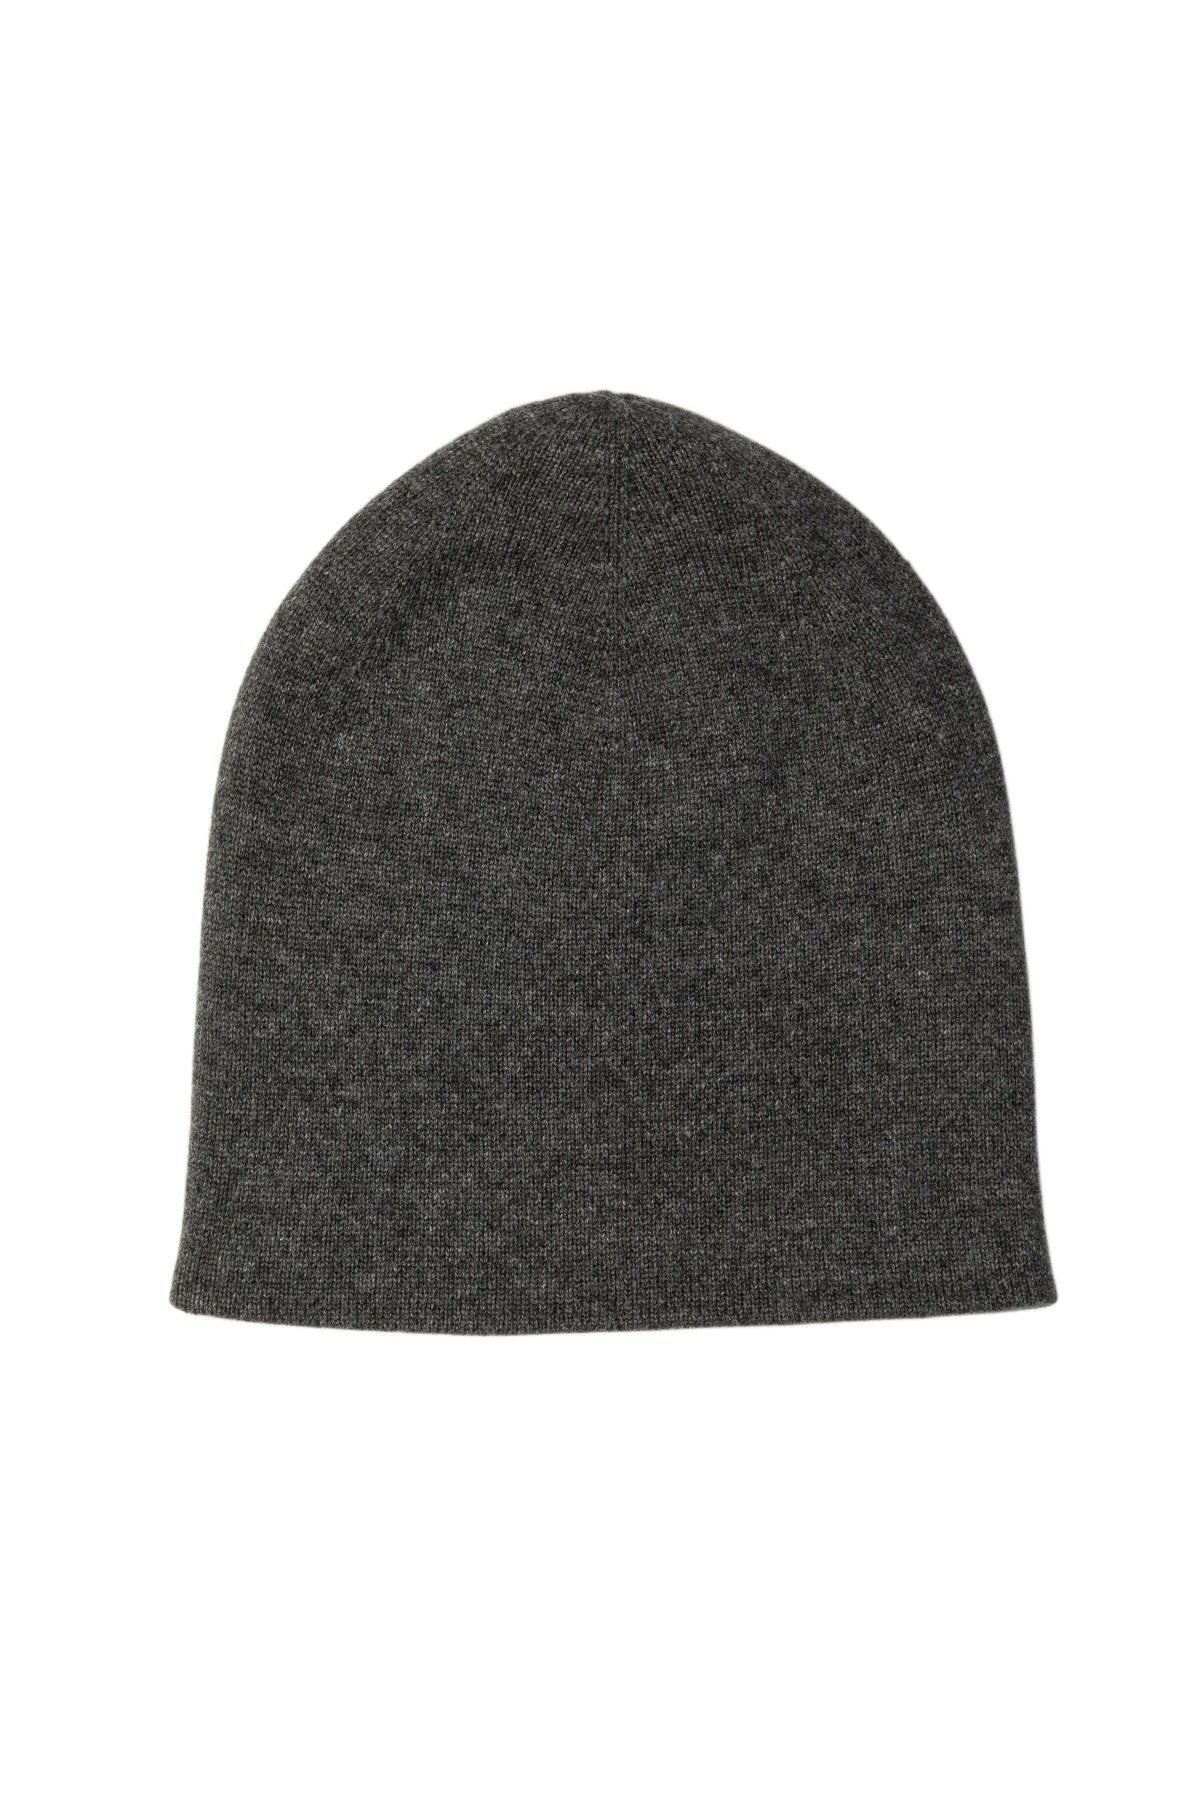 Charcoal & Dove Grey Reversible Cashmere Hat